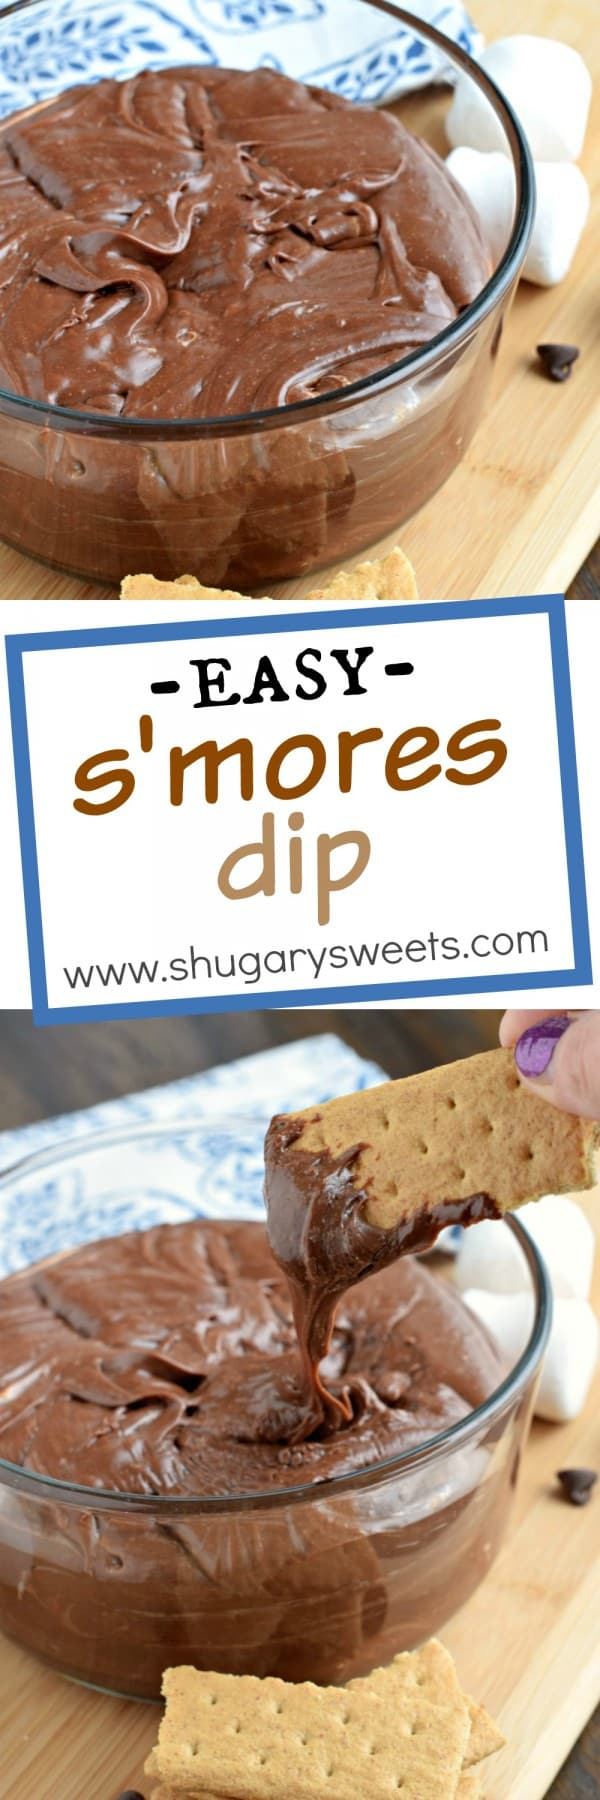 Easy, 3 ingredient recipe for delicious, decadent S'mores Dip! Heat and serve for a tasty, fudgy treat!